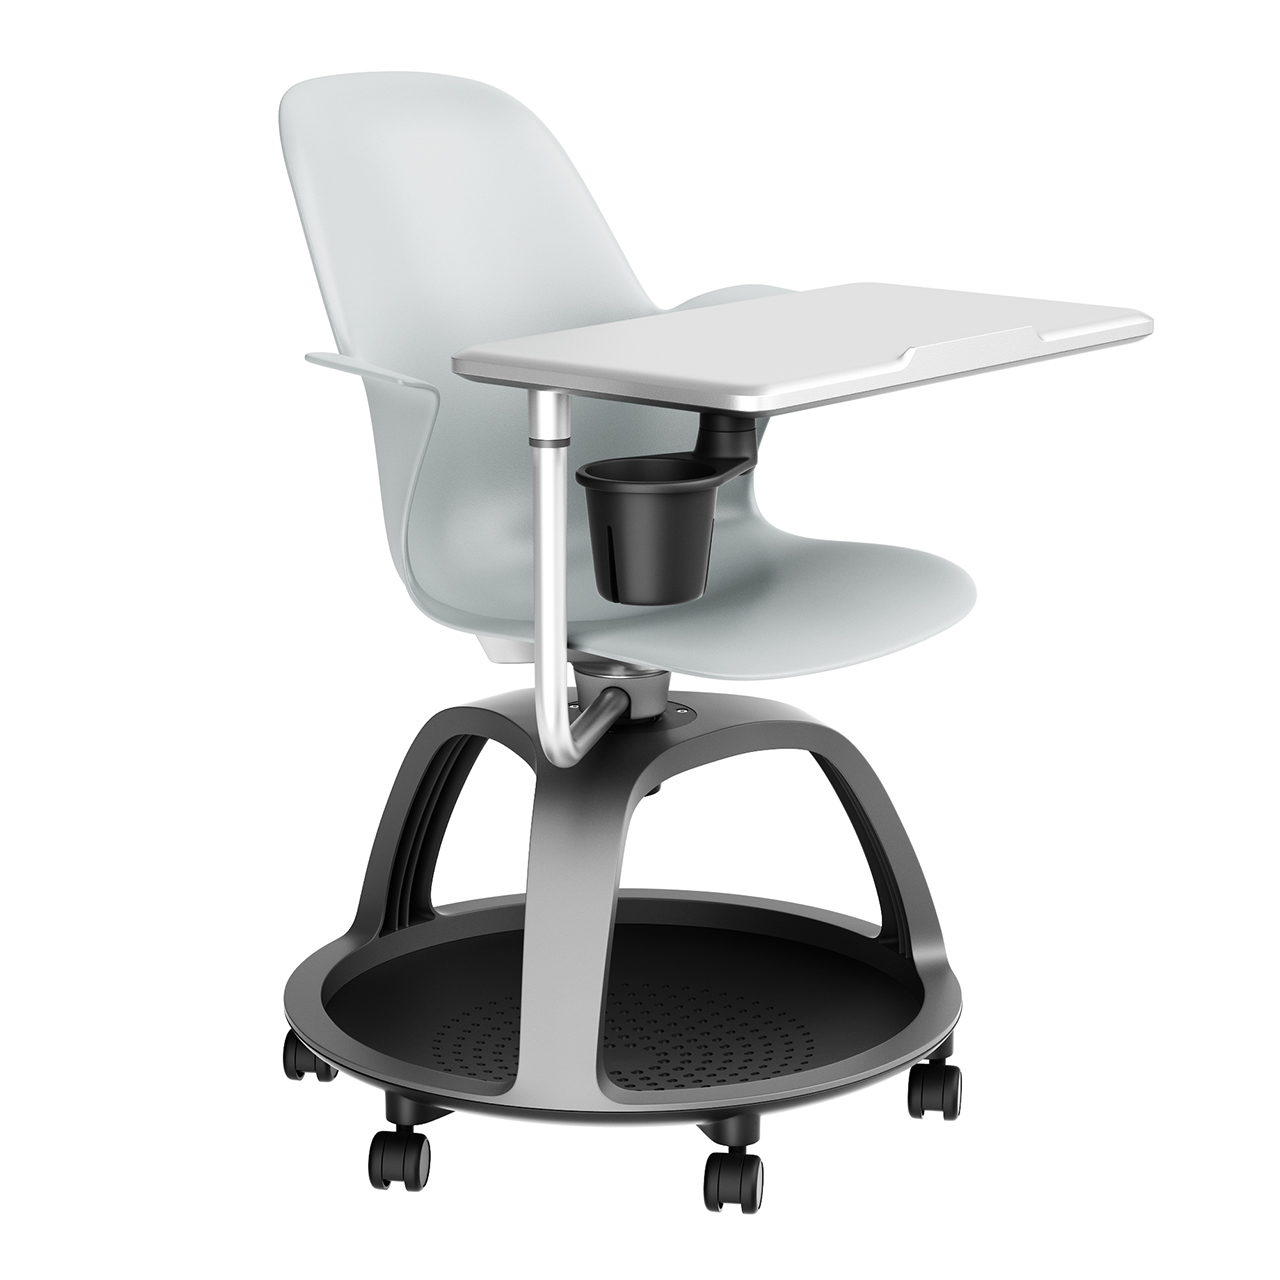 Node Collaborative Mid-Back Chair by Steelcase